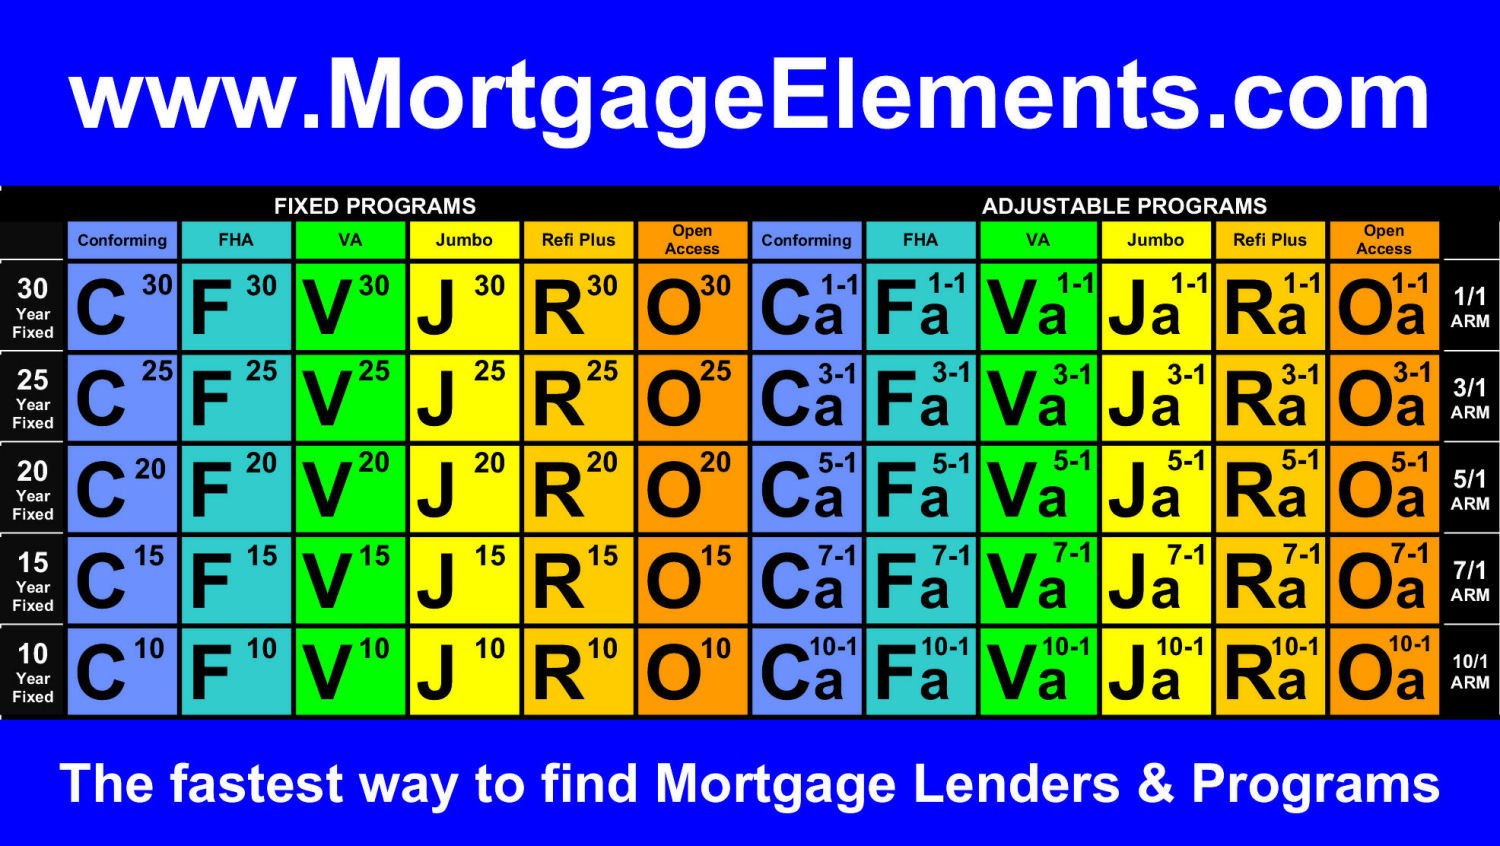 Discover over 300 Wholesale Correspondent and Warehouse Mortgage Lenders at MortgageElements.com